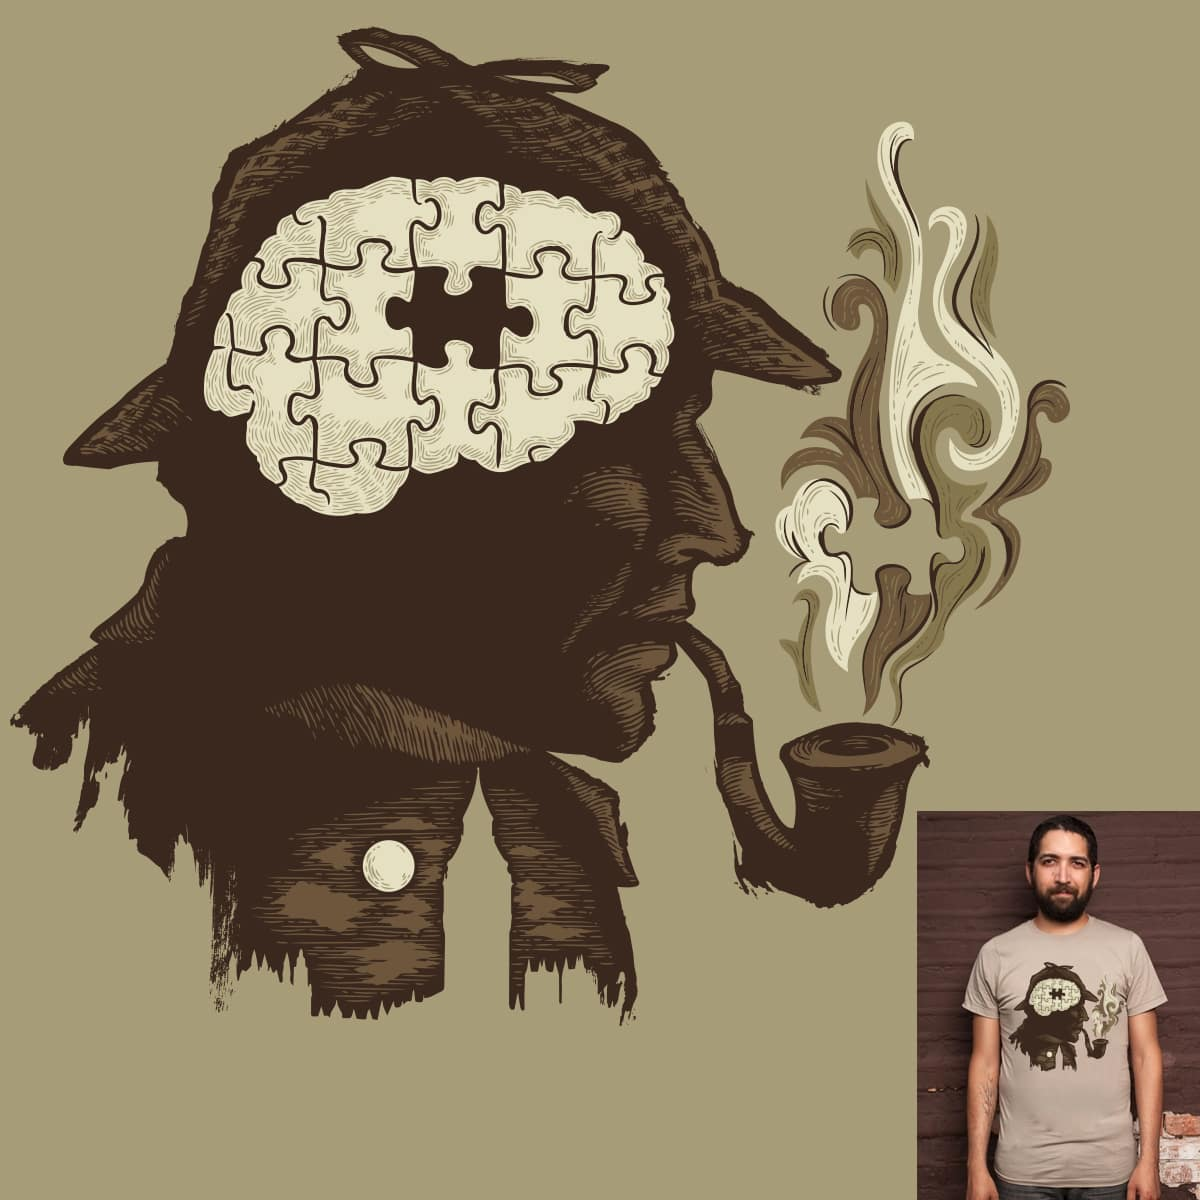 Puzzle Solved by cpdesign on Threadless